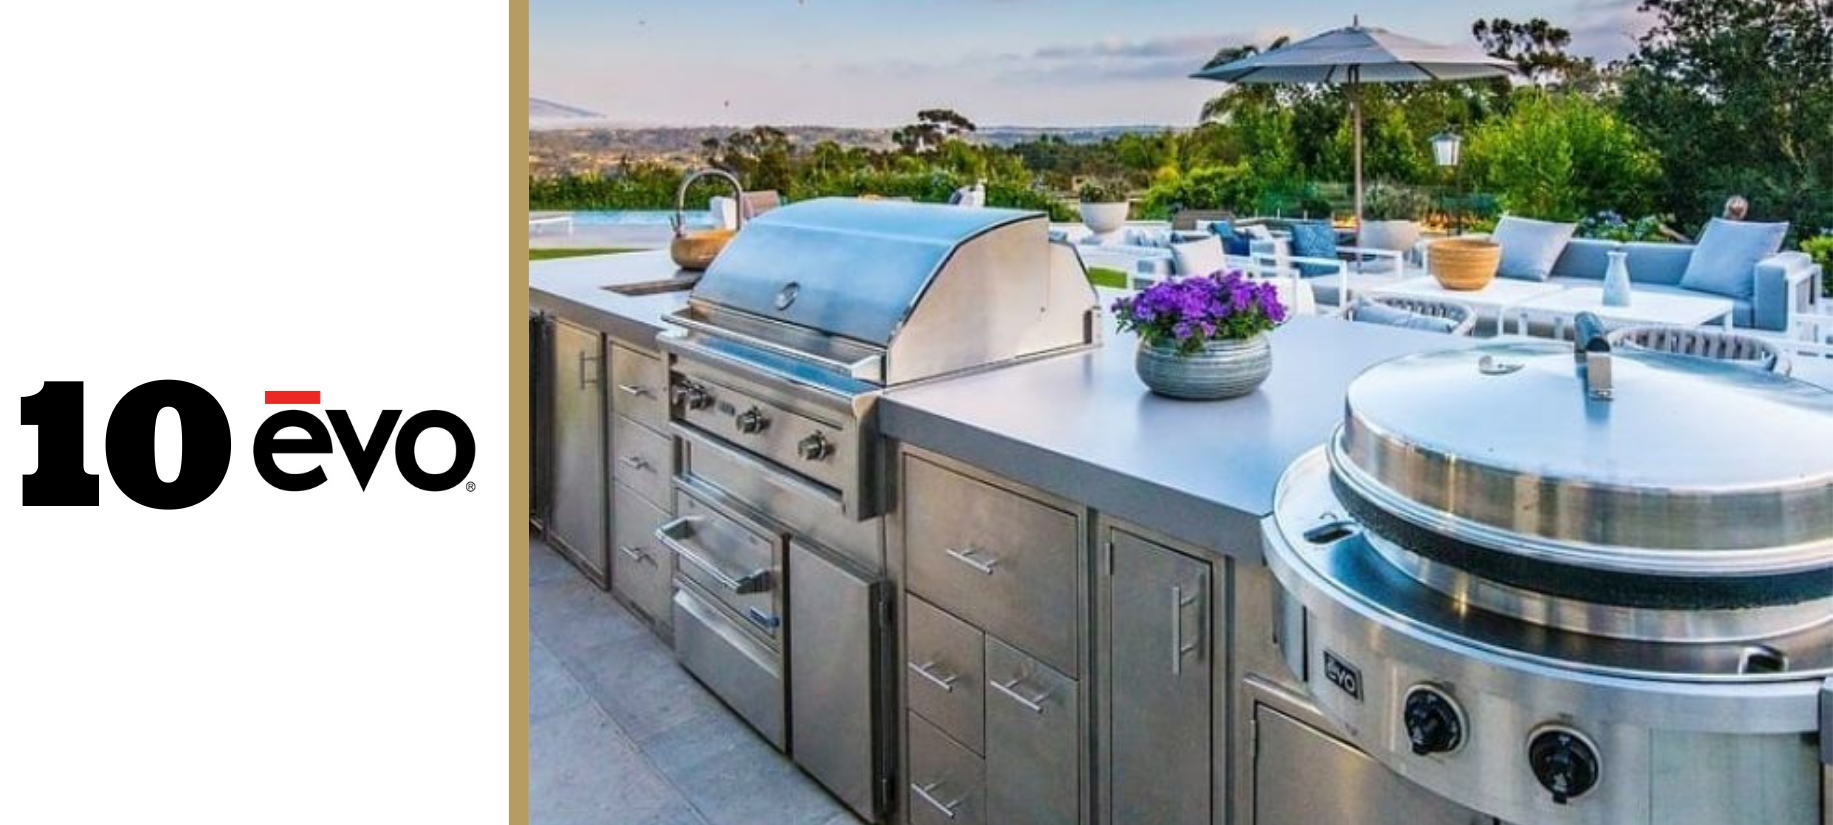 Evo Affinity 30G built-in cooking surface in outdoor kitchen counters